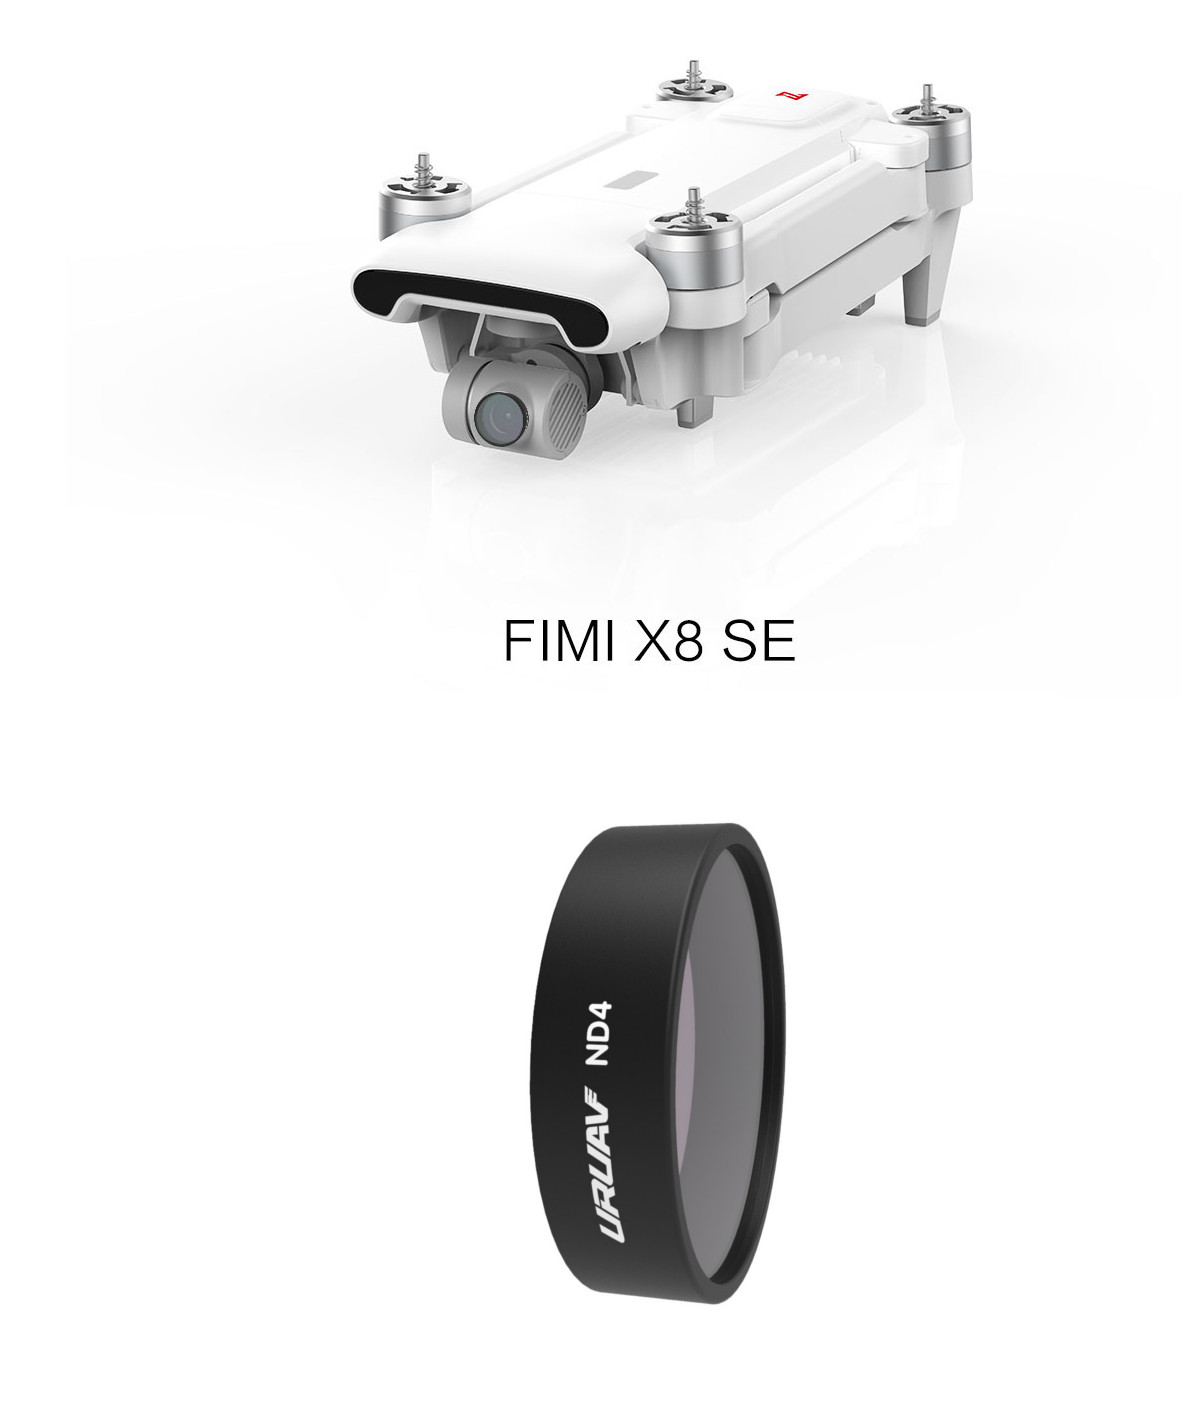 URUAV ND Lens Filter ND4/ND8/ND16/ND32 for Xiaomi FIMI X8 SE HD 4K Camera - Photo: 1